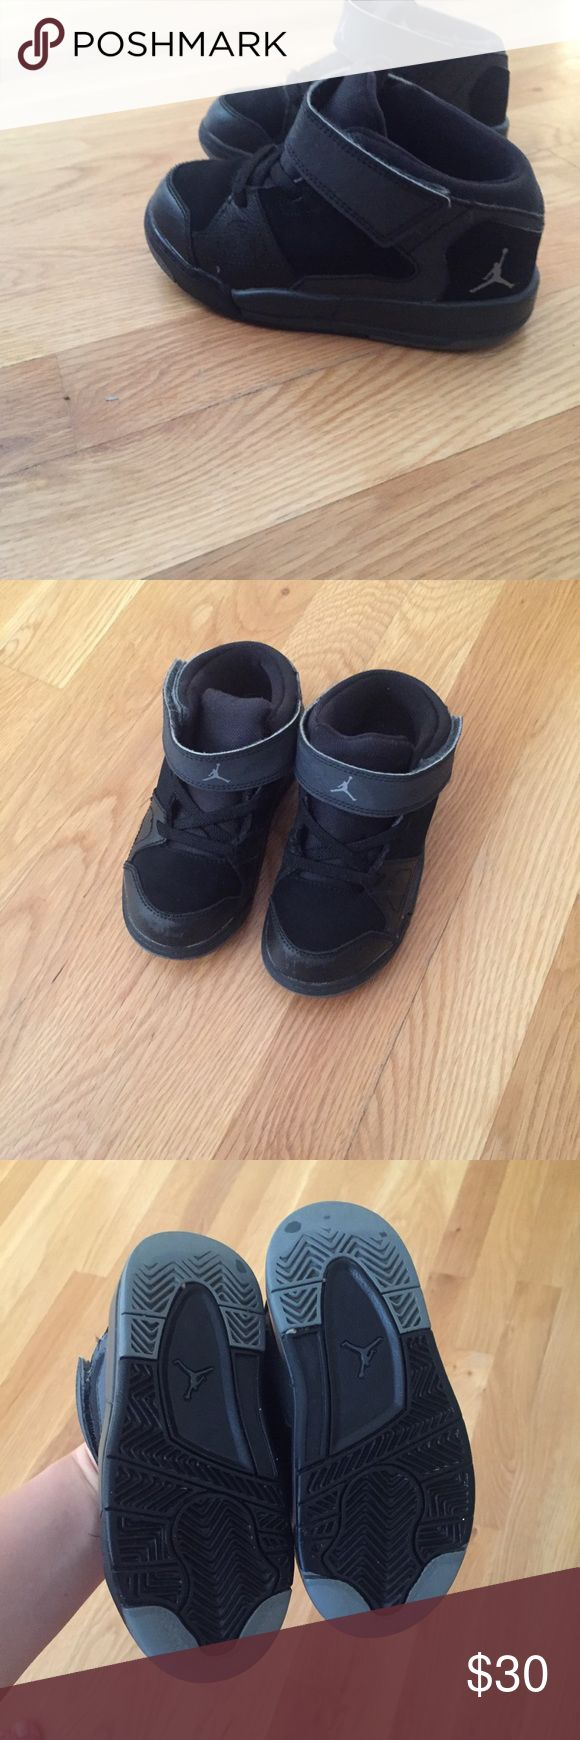 Jordan sneakers for boys Original Jordan shoes for boys in very good condition but they have some scratches in the front (please see photos), no other flaws. Size 8.5/ US 26 (15 cm inside). Jordan Shoes Sneakers